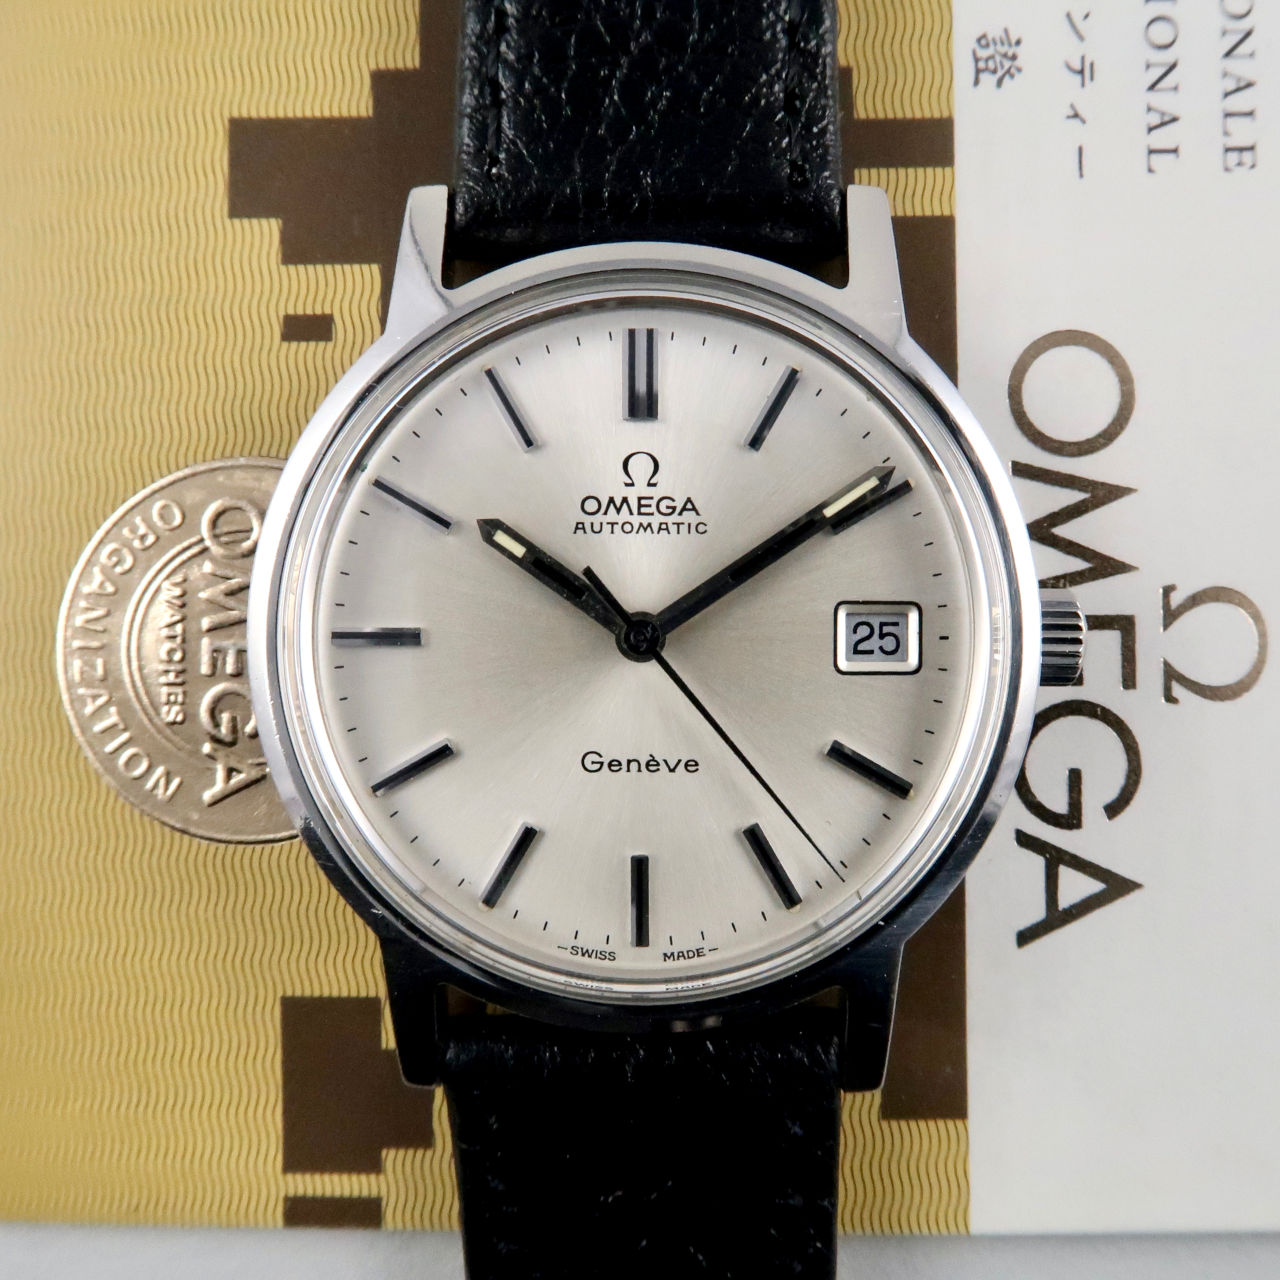 Omega Genève Ref. 166.0163 steel vintage wristwatch, sold in 1976